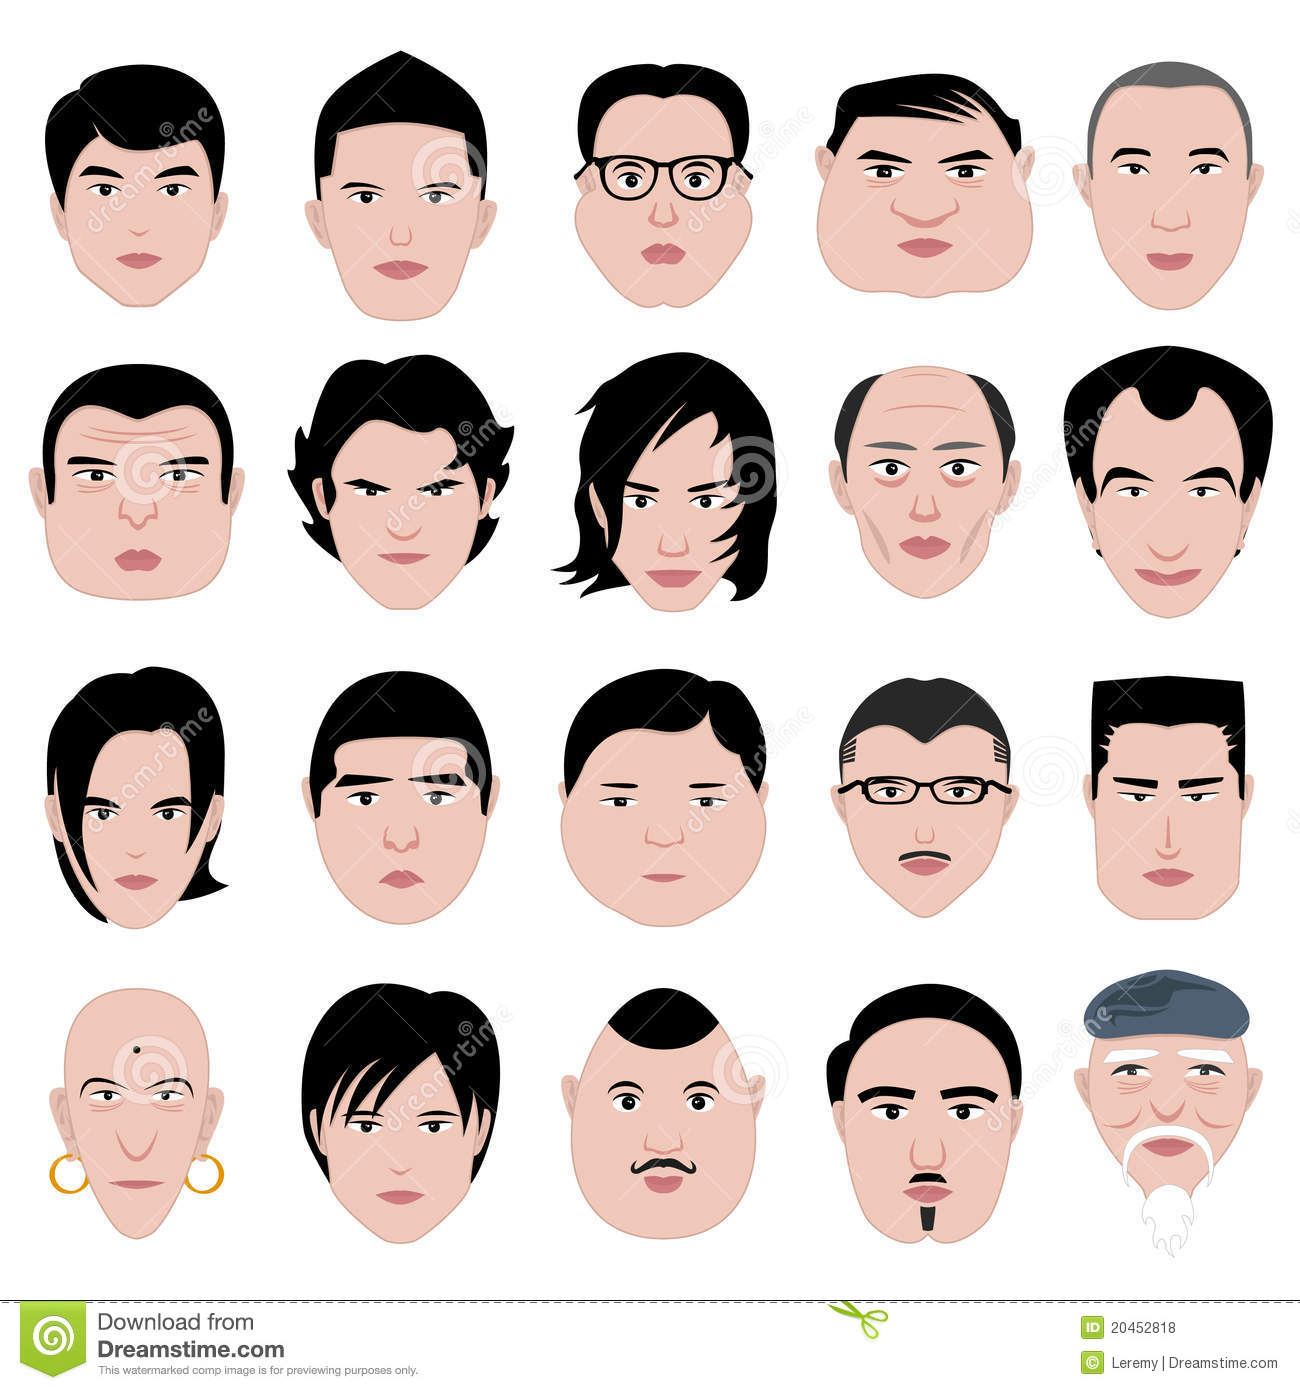 Man Face Shape Hairstyle Round Fat Thin Old Royalty Free